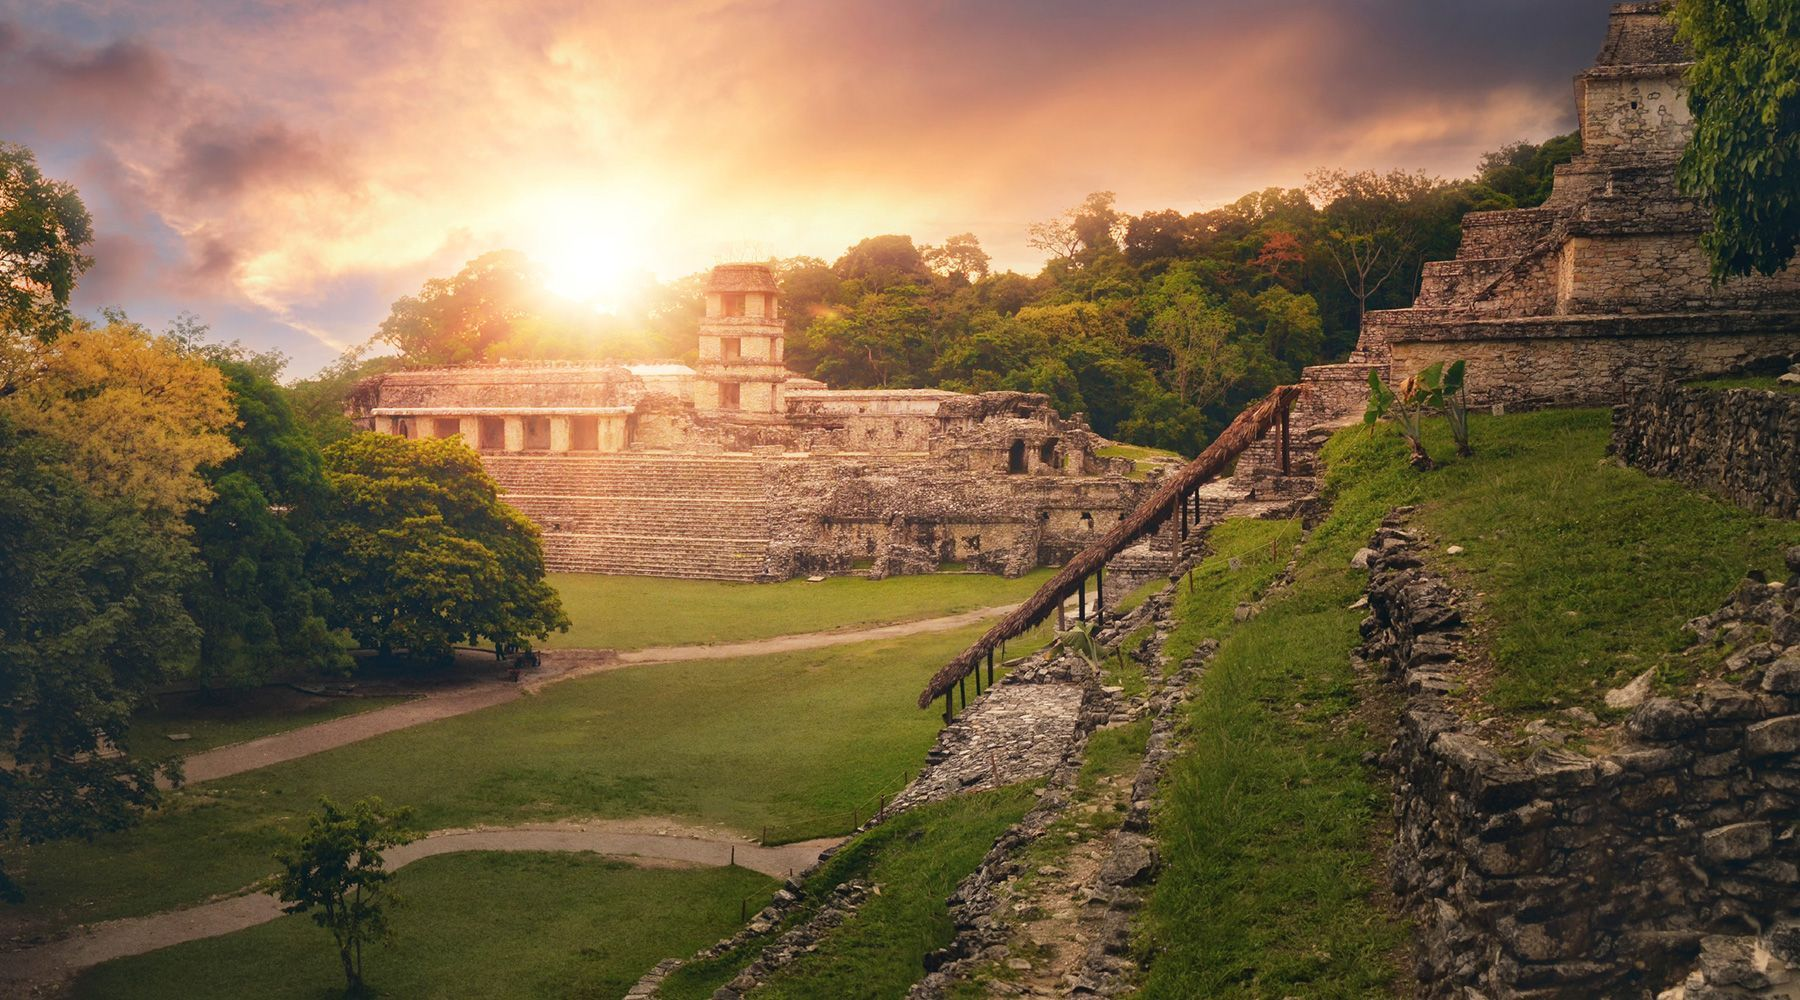 The Archaeological Zone of Palenque in Chiapas